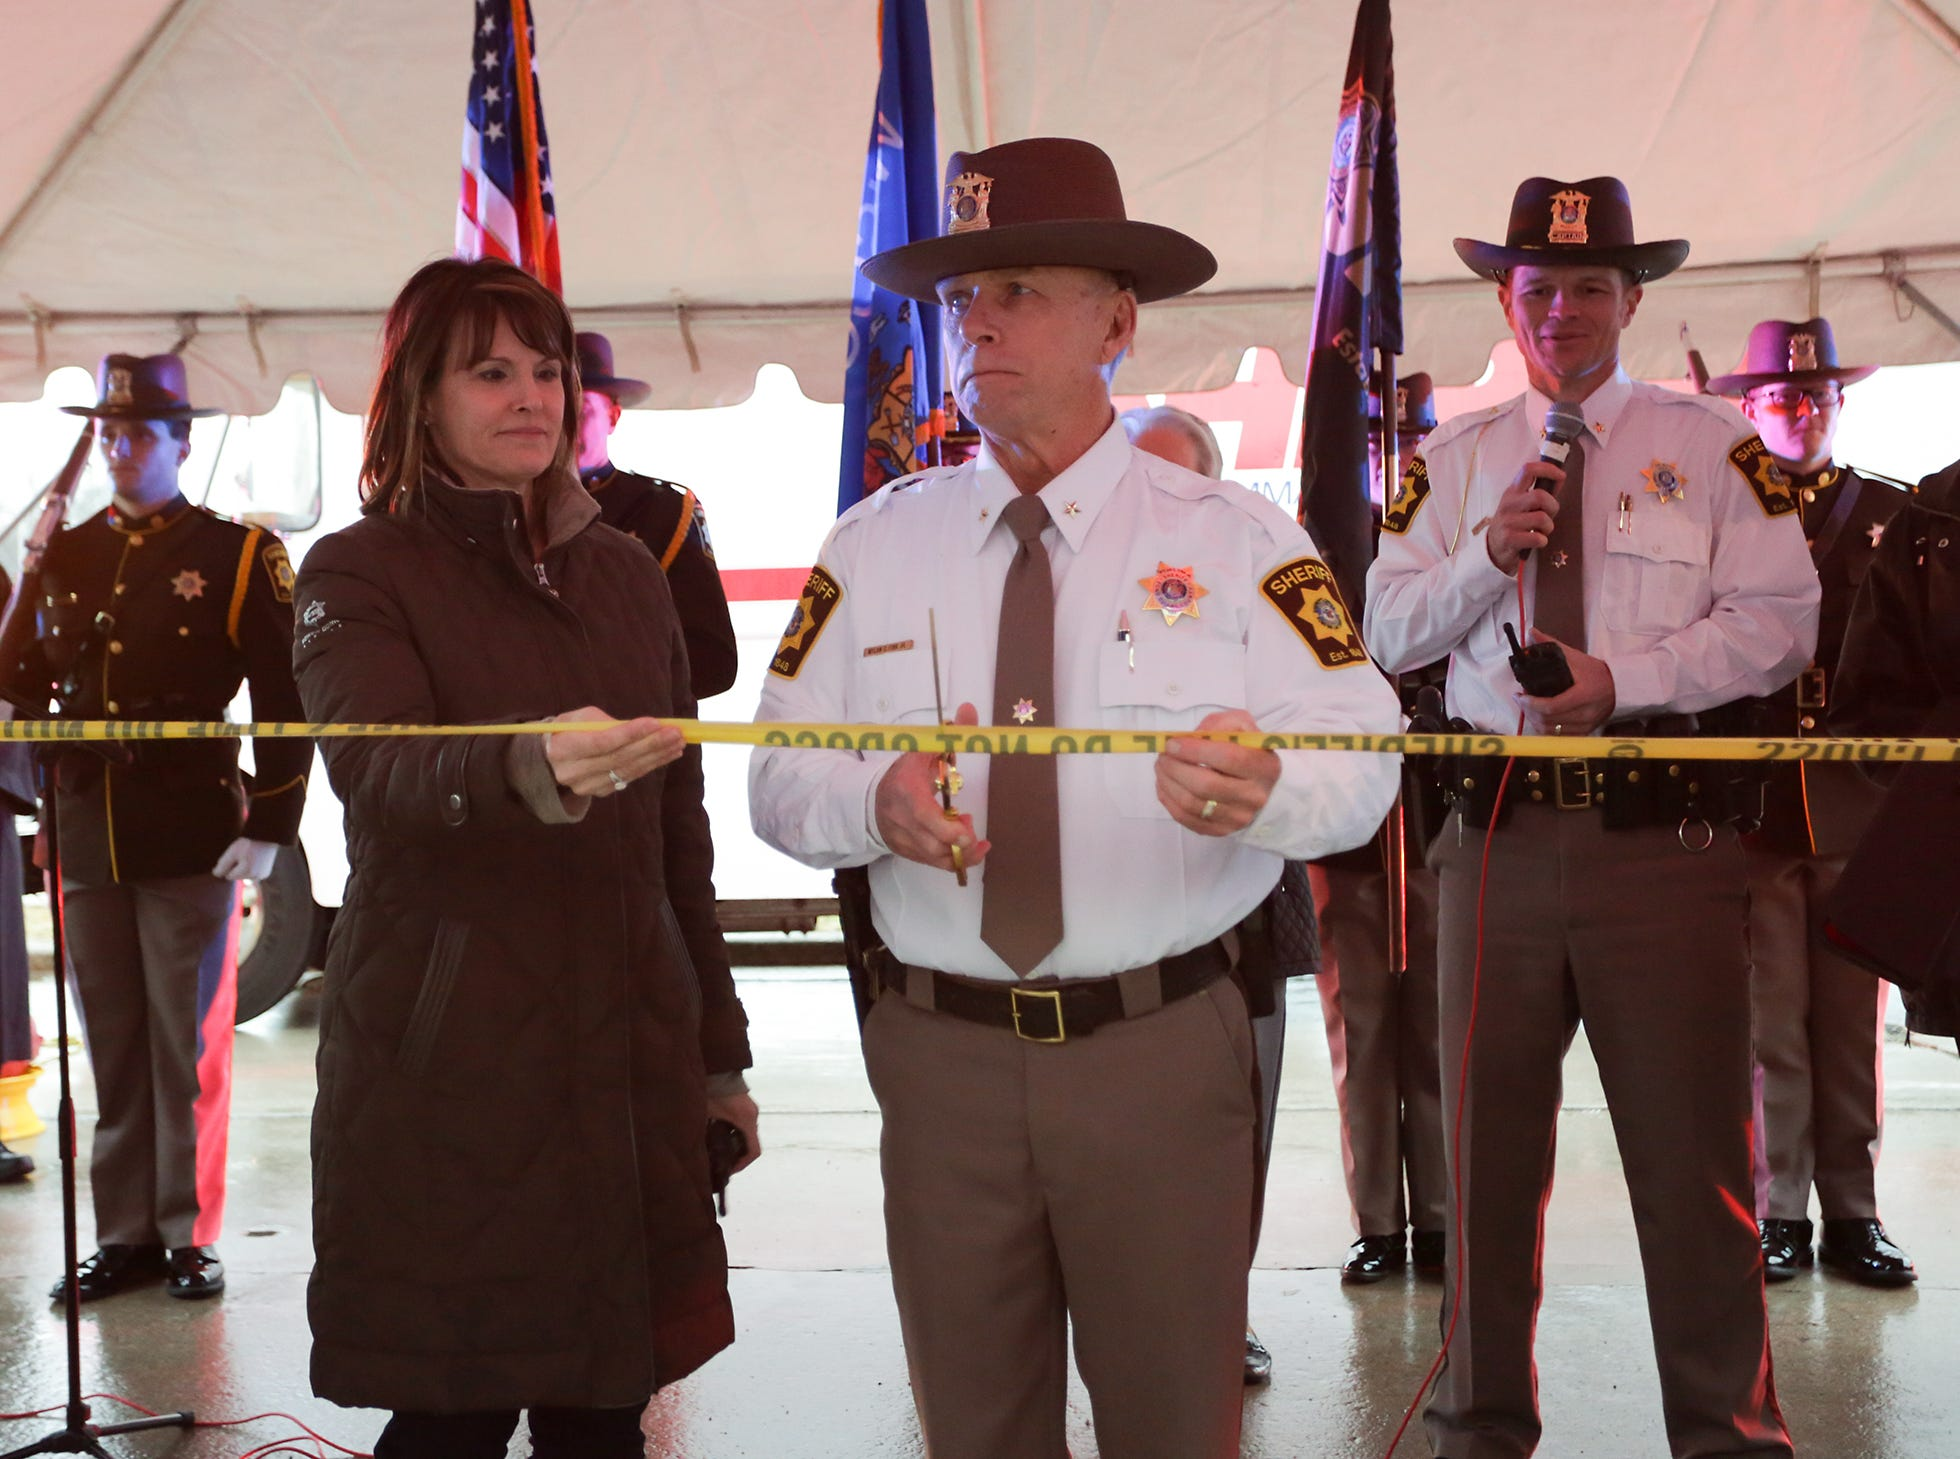 Recently retired Fond du Lac County Sheriff Mick Fink, standing next to his wife Mickie, cuts a ribbon of yellow sheriff's line tape to symbolize becoming a non elected citizen Monday, January 7, 2019 after doing the ramp walk on his last day as sheriff of Fond du Lac County. Fink retired from the position of Fond du Lac County Sheriff after serving for 12 years. Submitted by Roxanne Abler/USA TODAY NETWORK-Wisconsin